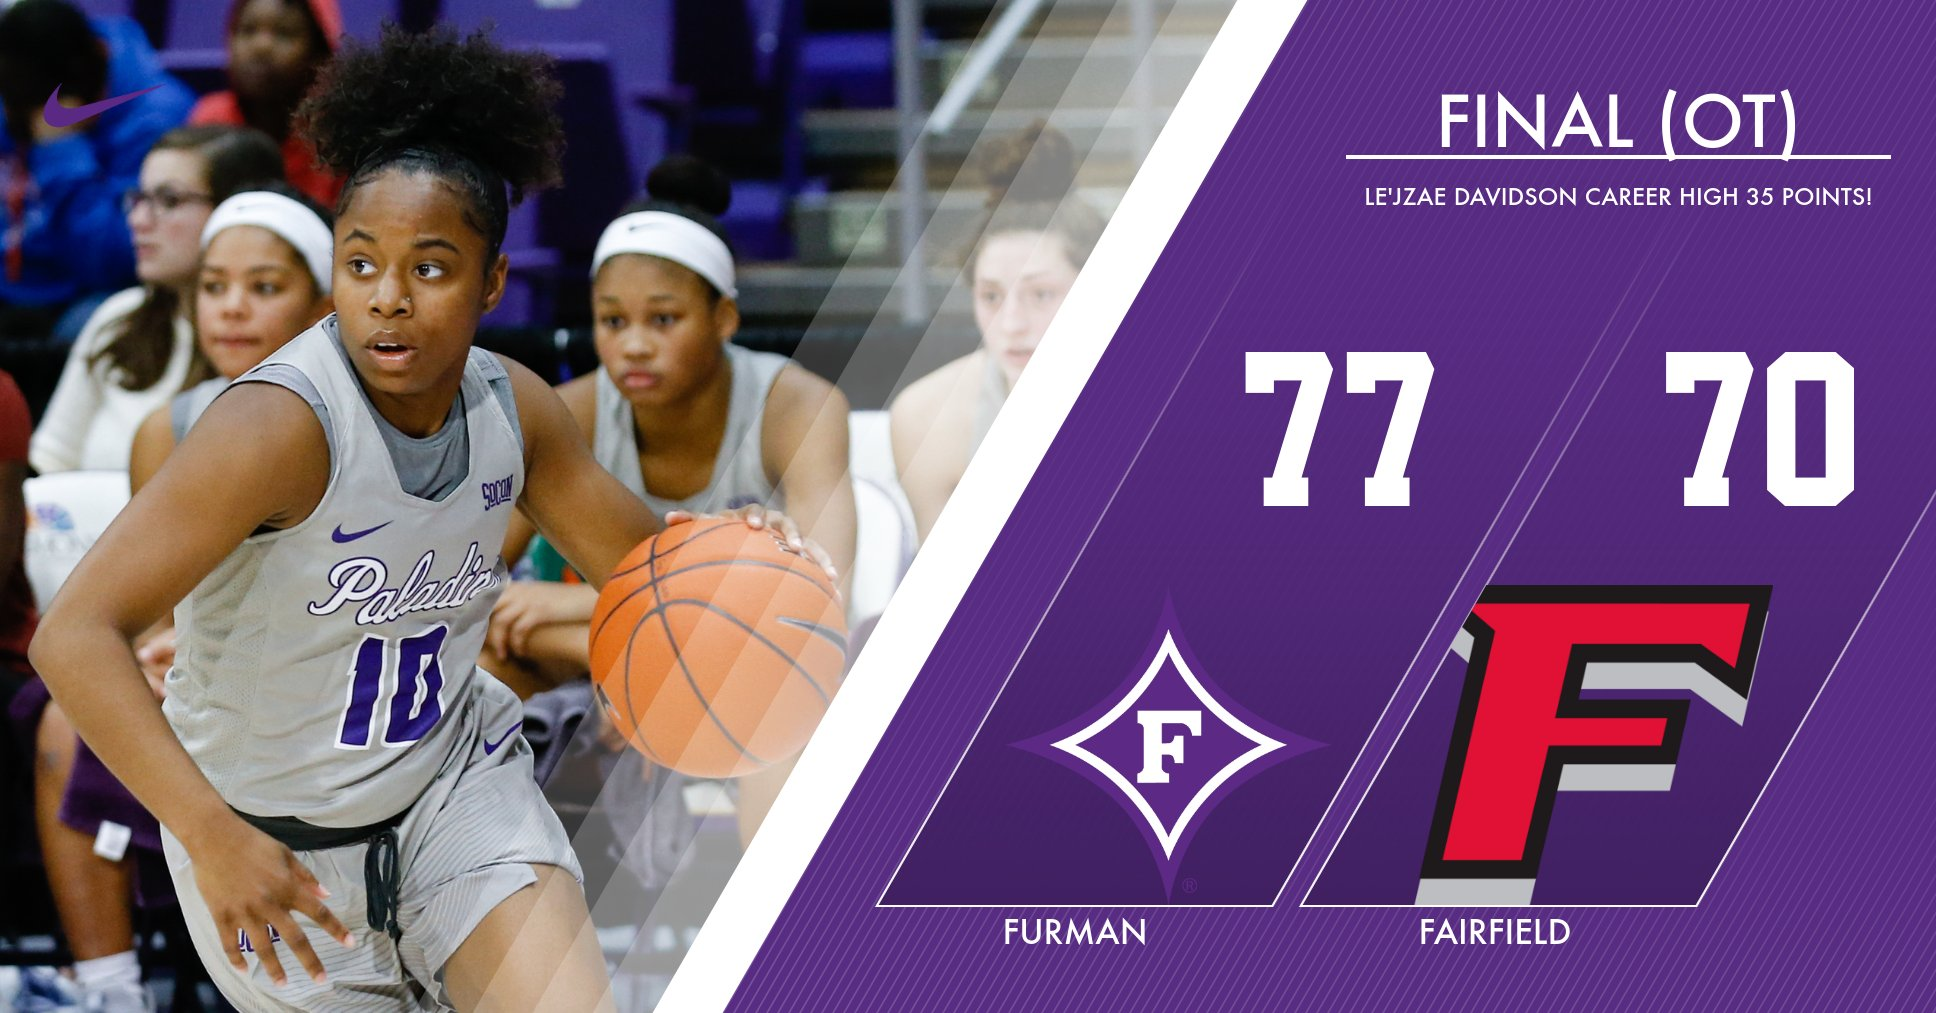 Davidson's Career High 35 Propels Furman Past Fairfield, 77-70 (OT)